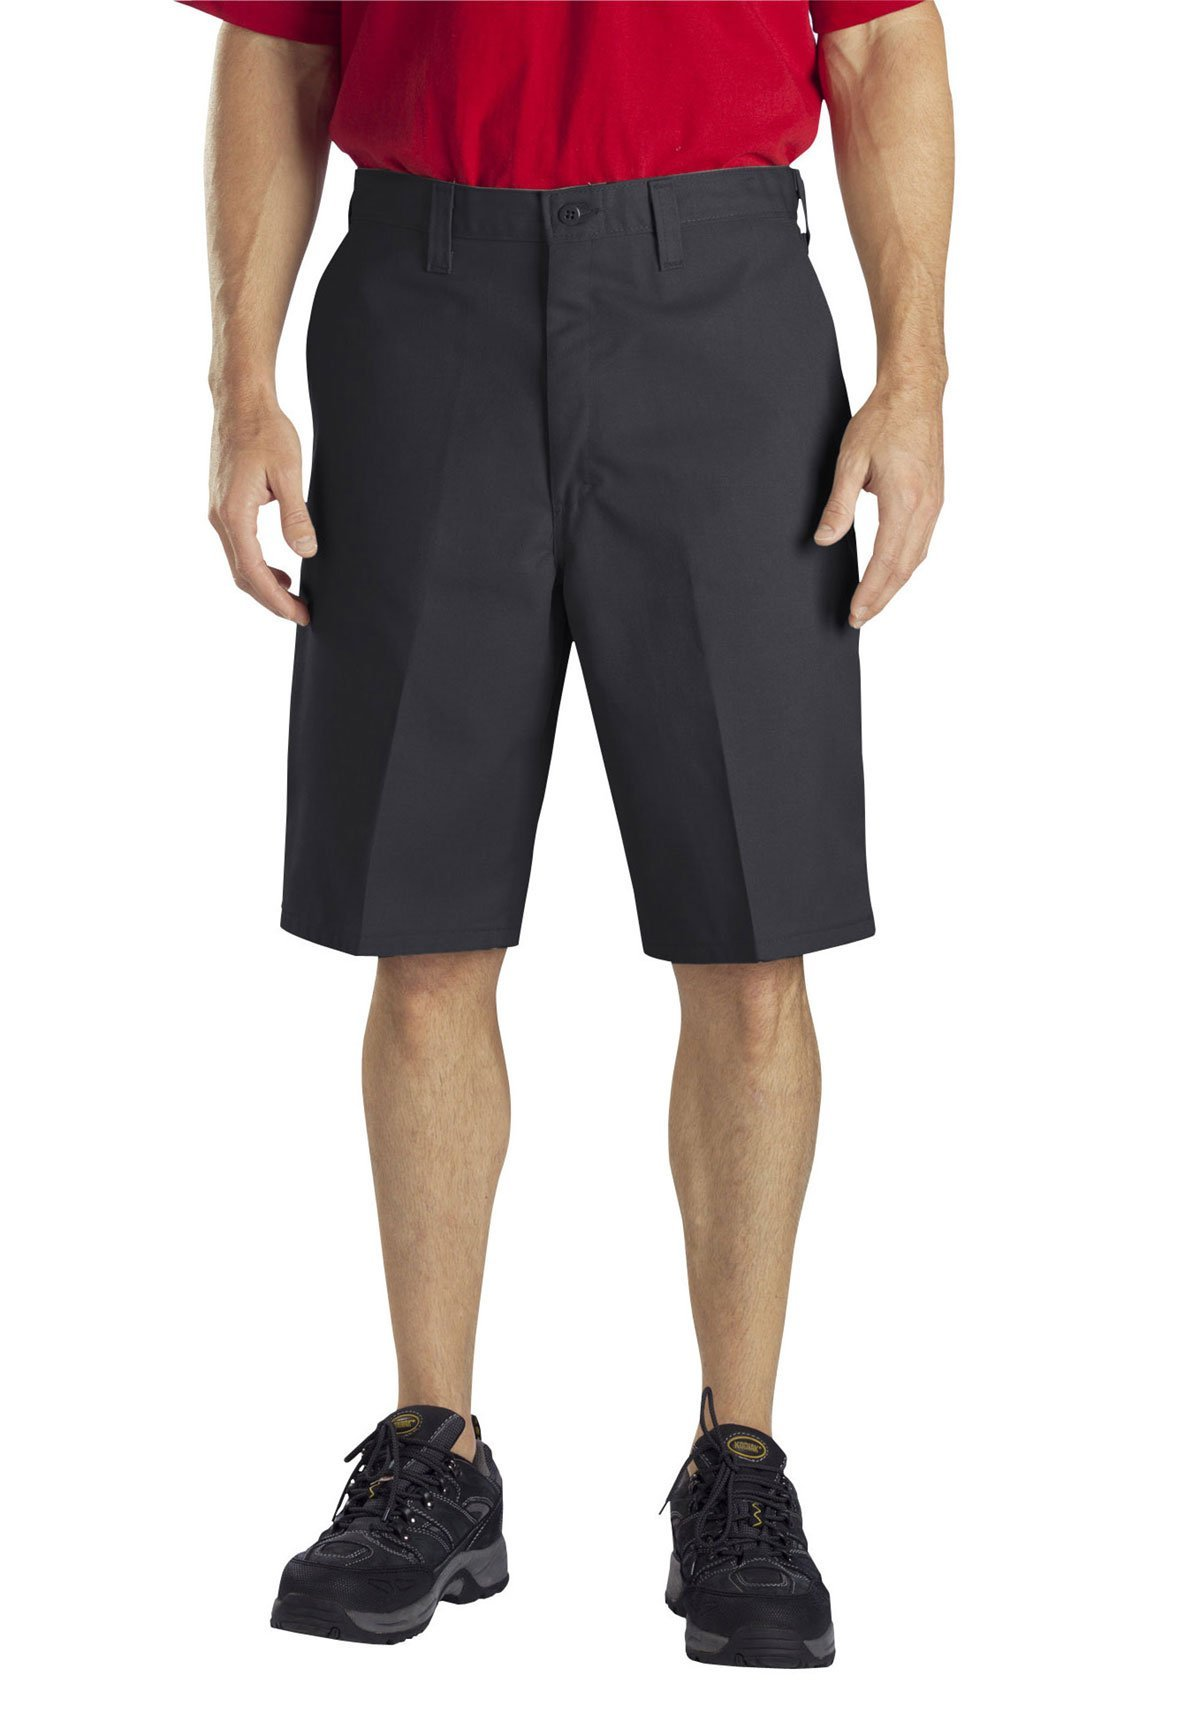 Dickies Occupational Workwear LR303DS 48 Polyester/Cotton Relaxed Fit Men's Industrial Flat Front Short with Button Closure, 48'' Waist Size, 11'' Inseam, Desert Sand